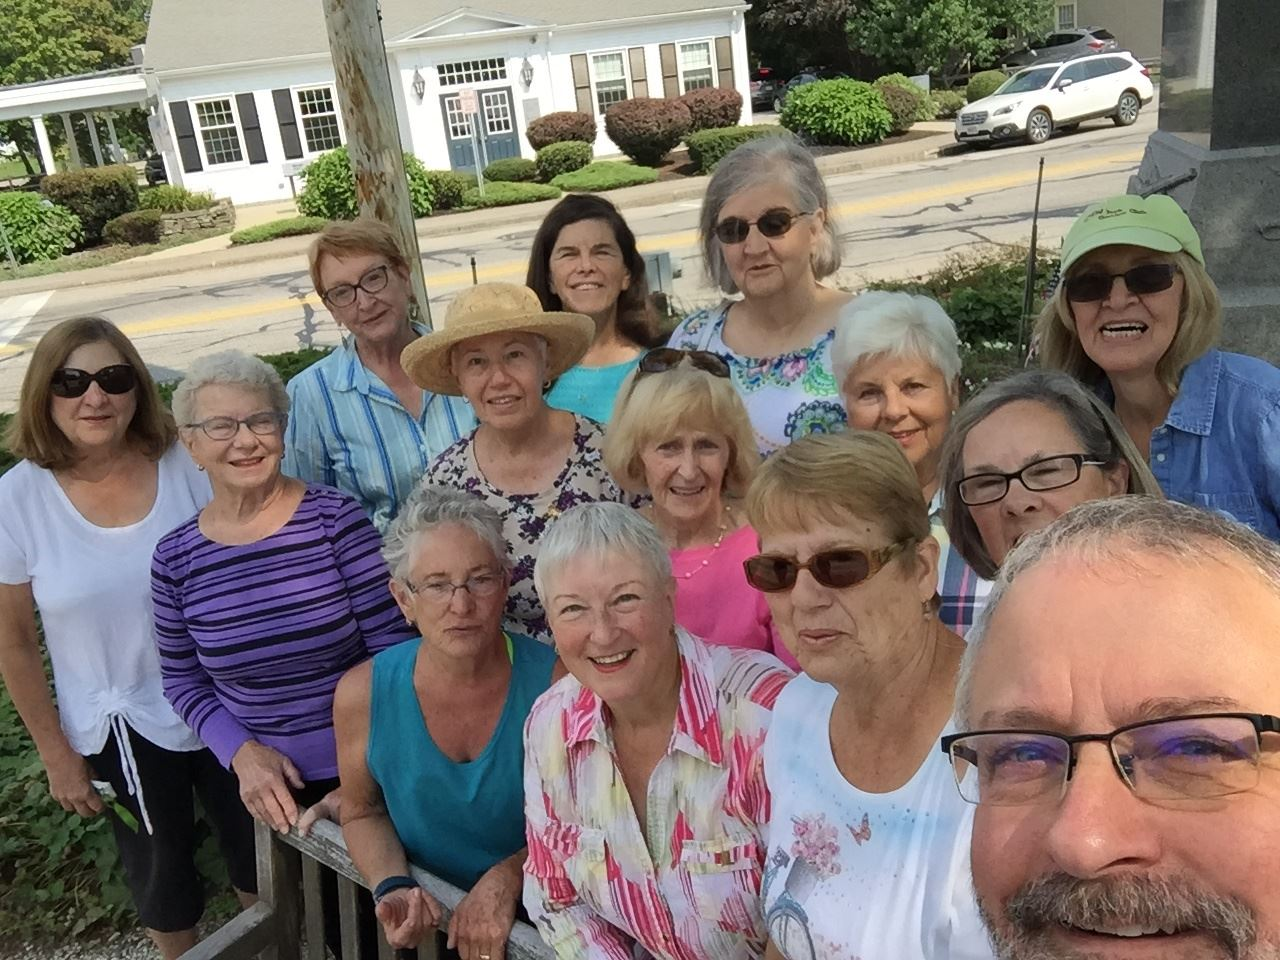 027 With Old York Garden Club